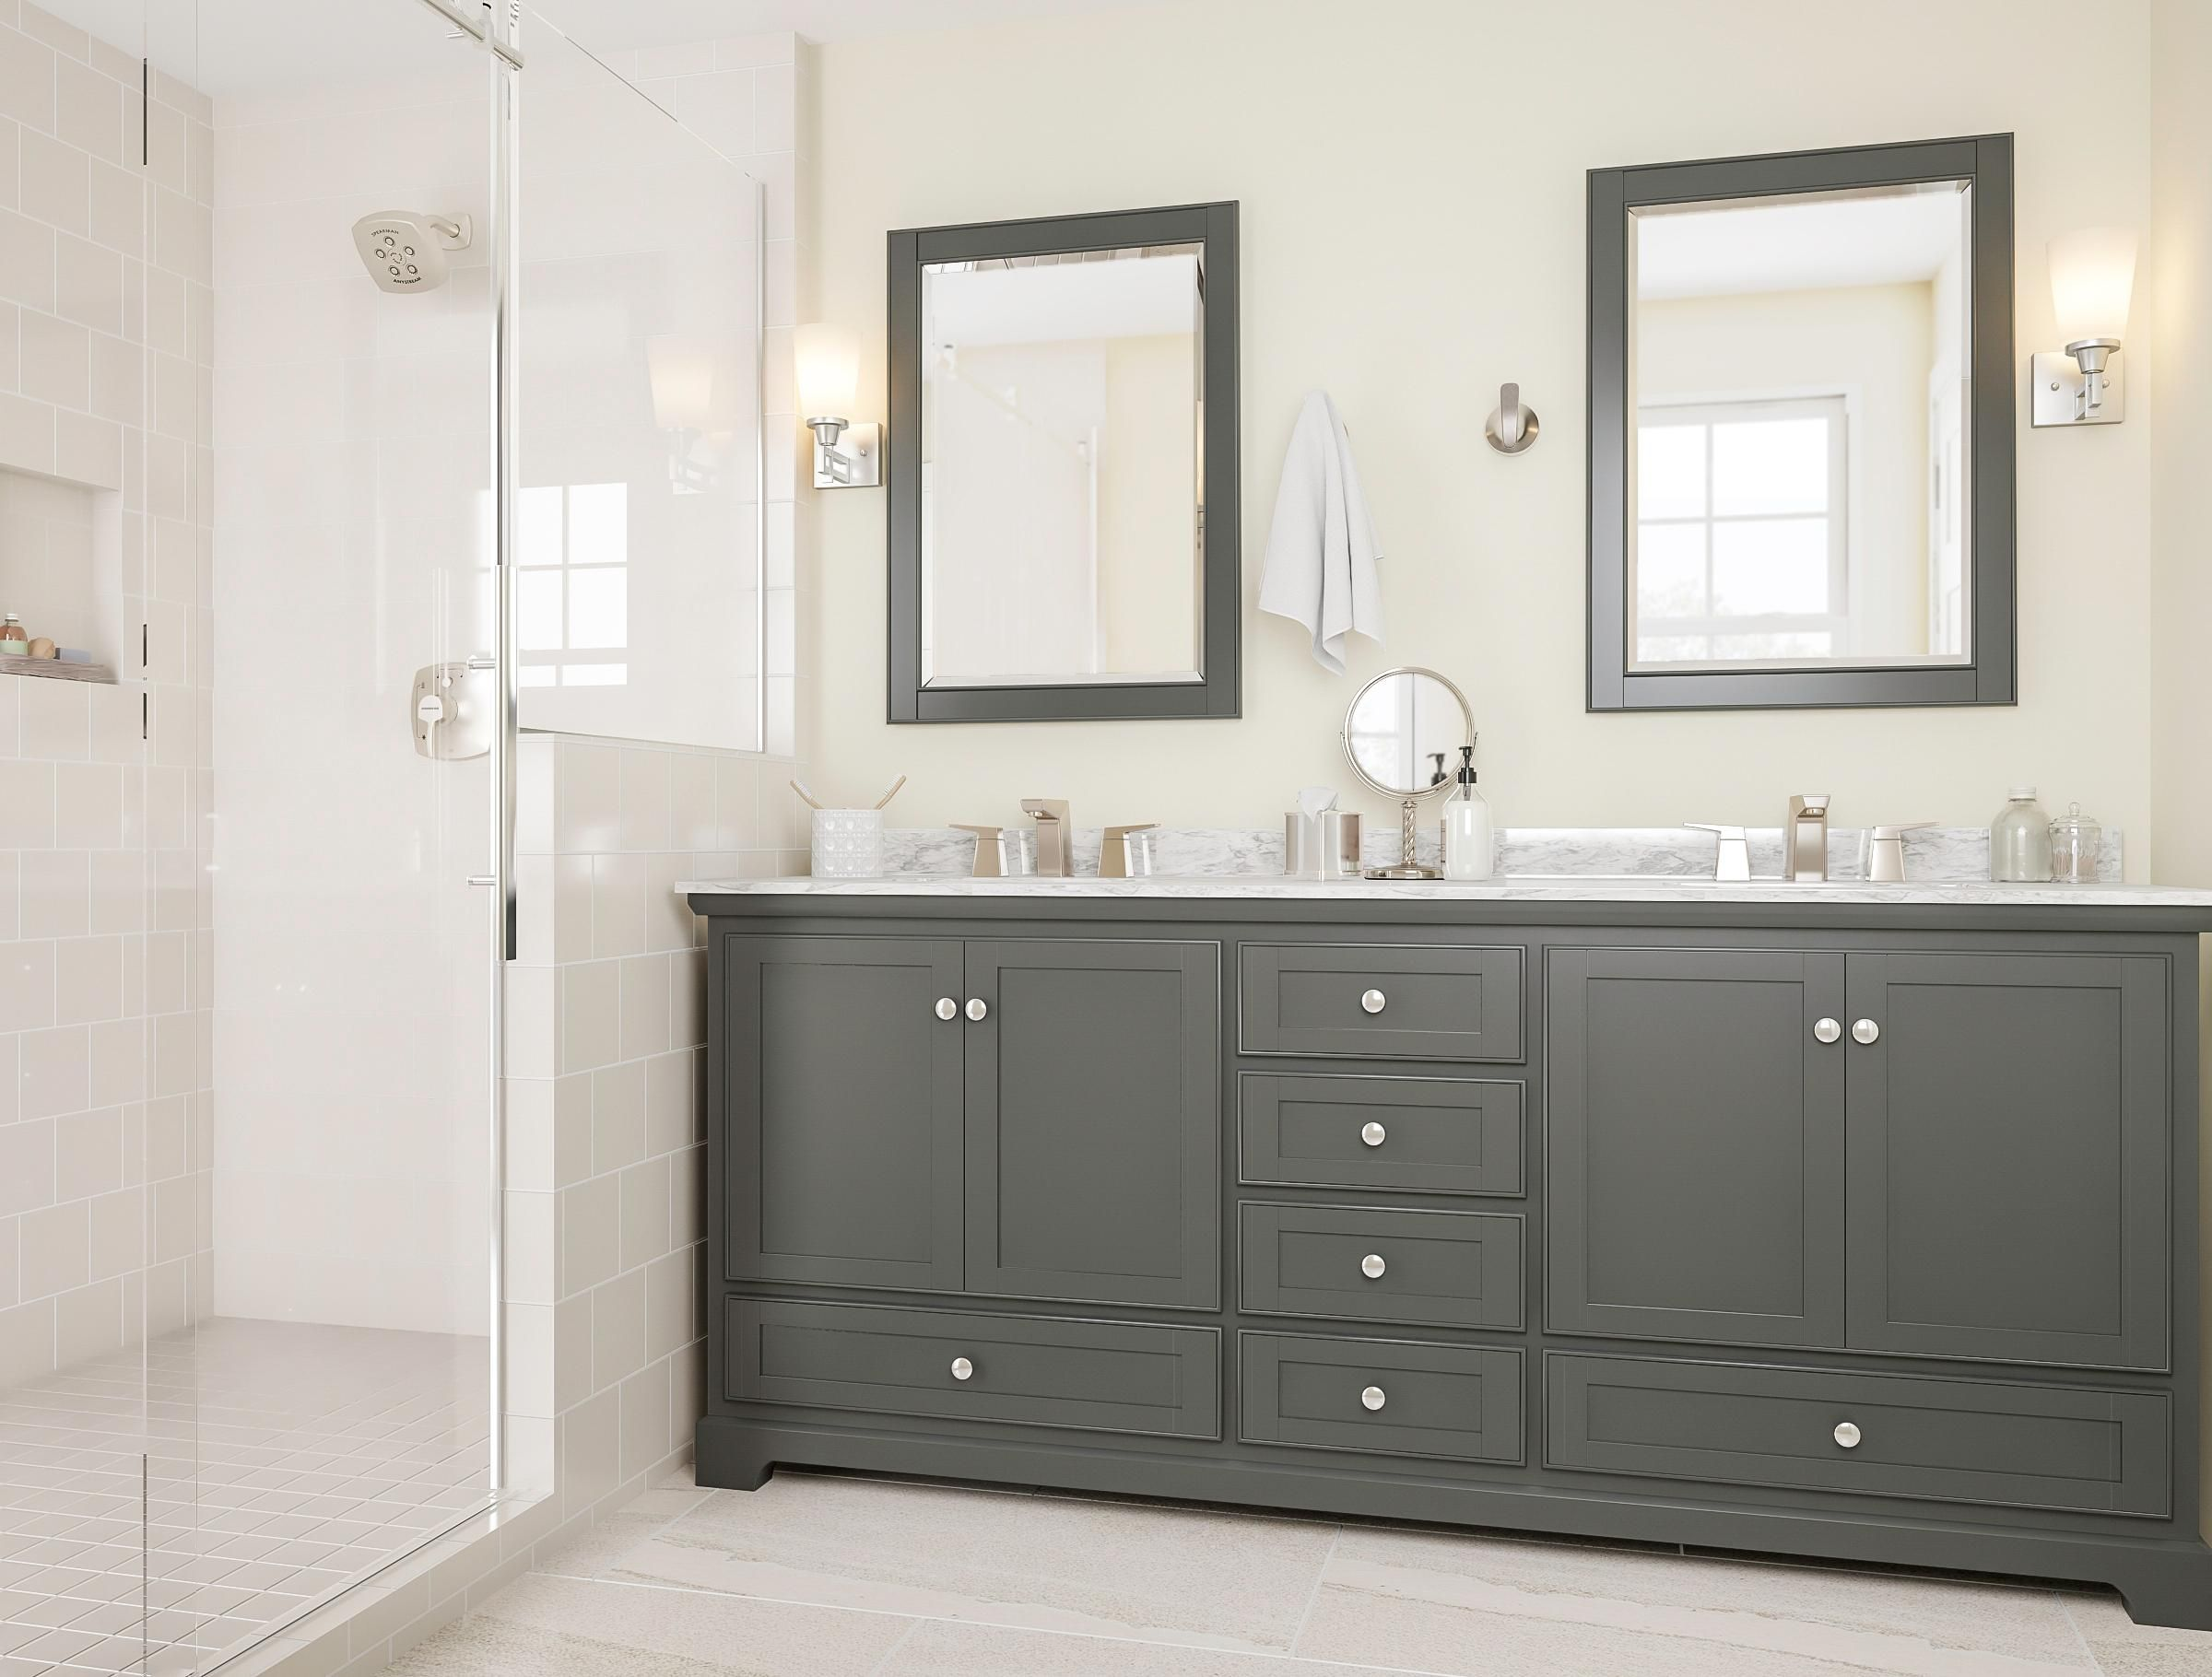 Best Know Your Designer Greens Here The Stunner Is The Vanity 400 x 300